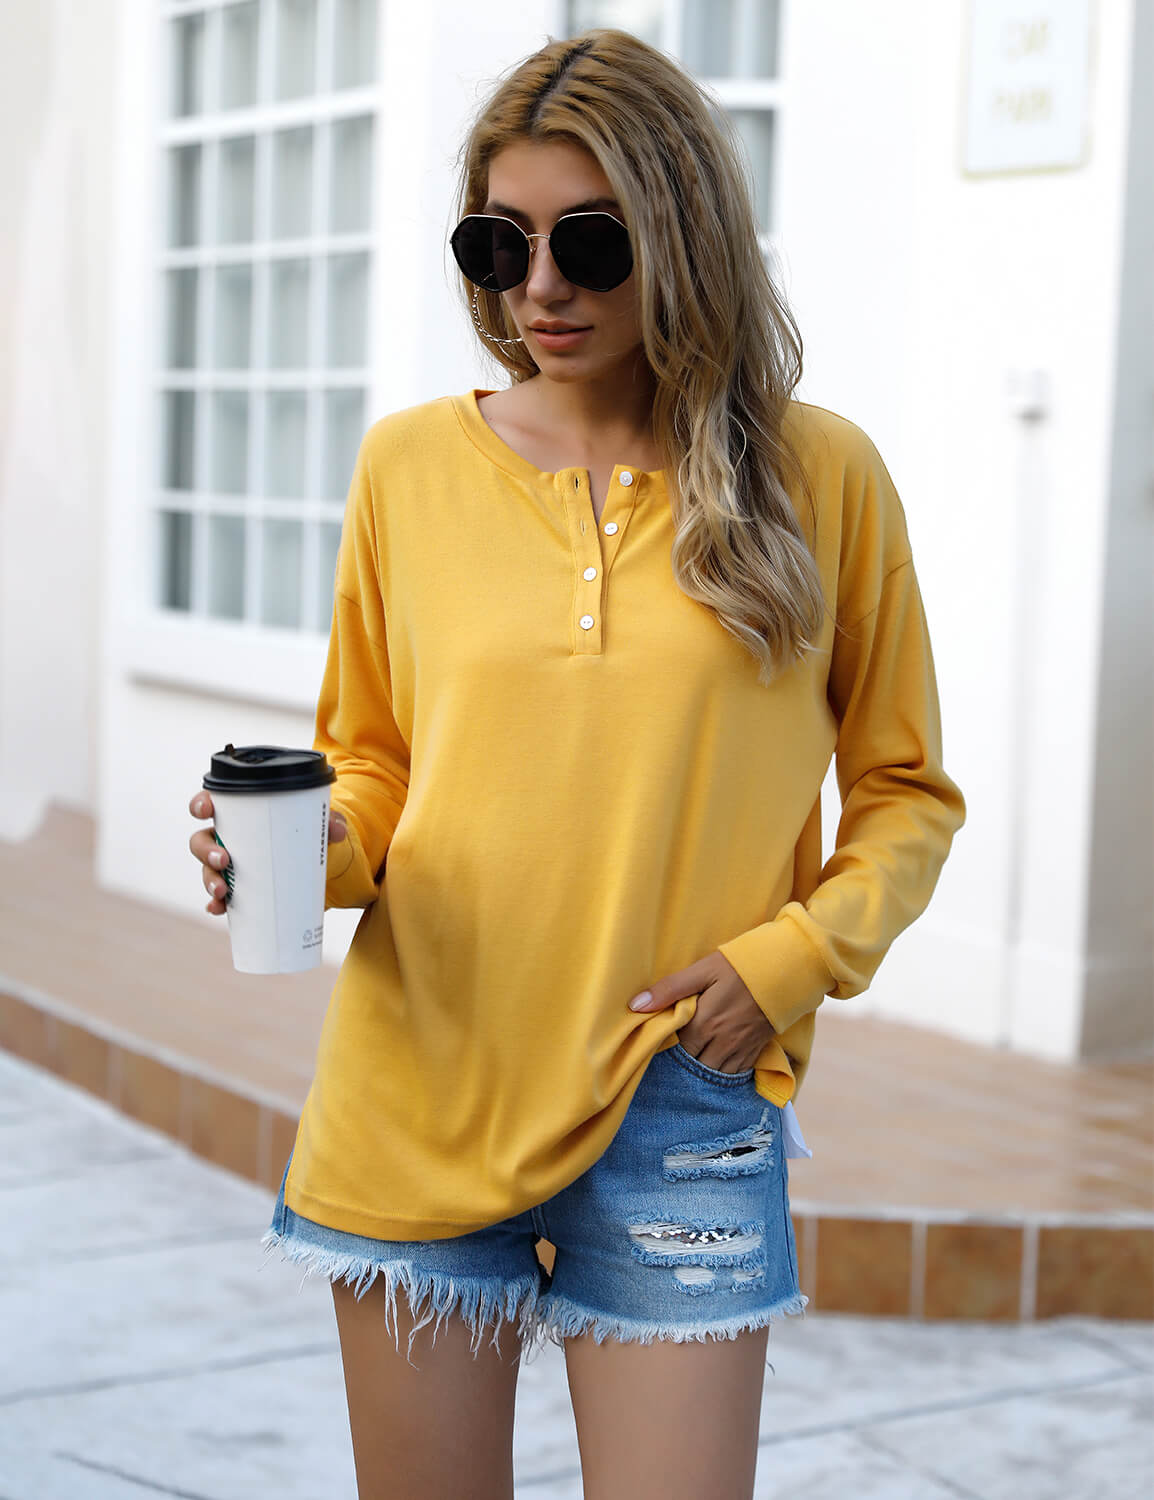 Blooming Jelly_Cozy Yellow Henley Shirt_Yellow_152735_20_Women Streetwear Fashion_Tops_T-Shirt